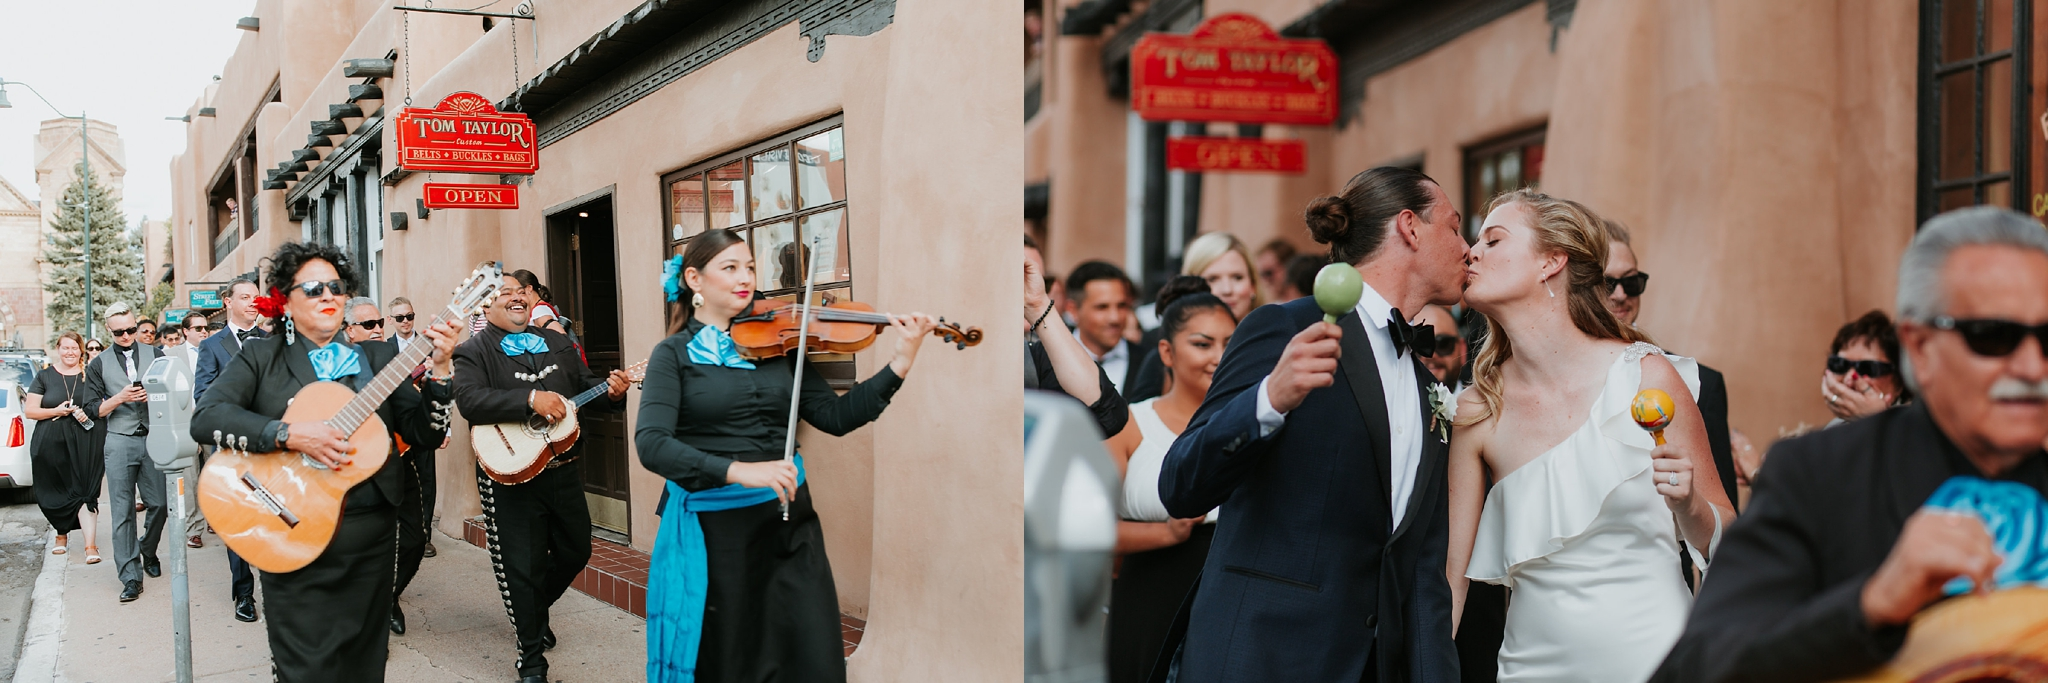 Alicia+lucia+photography+-+albuquerque+wedding+photographer+-+santa+fe+wedding+photography+-+new+mexico+wedding+photographer+-+new+mexico+wedding+-+santa+fe+wedding+-+albuquerque+wedding+-+southwest+wedding+traditions_0071.jpg